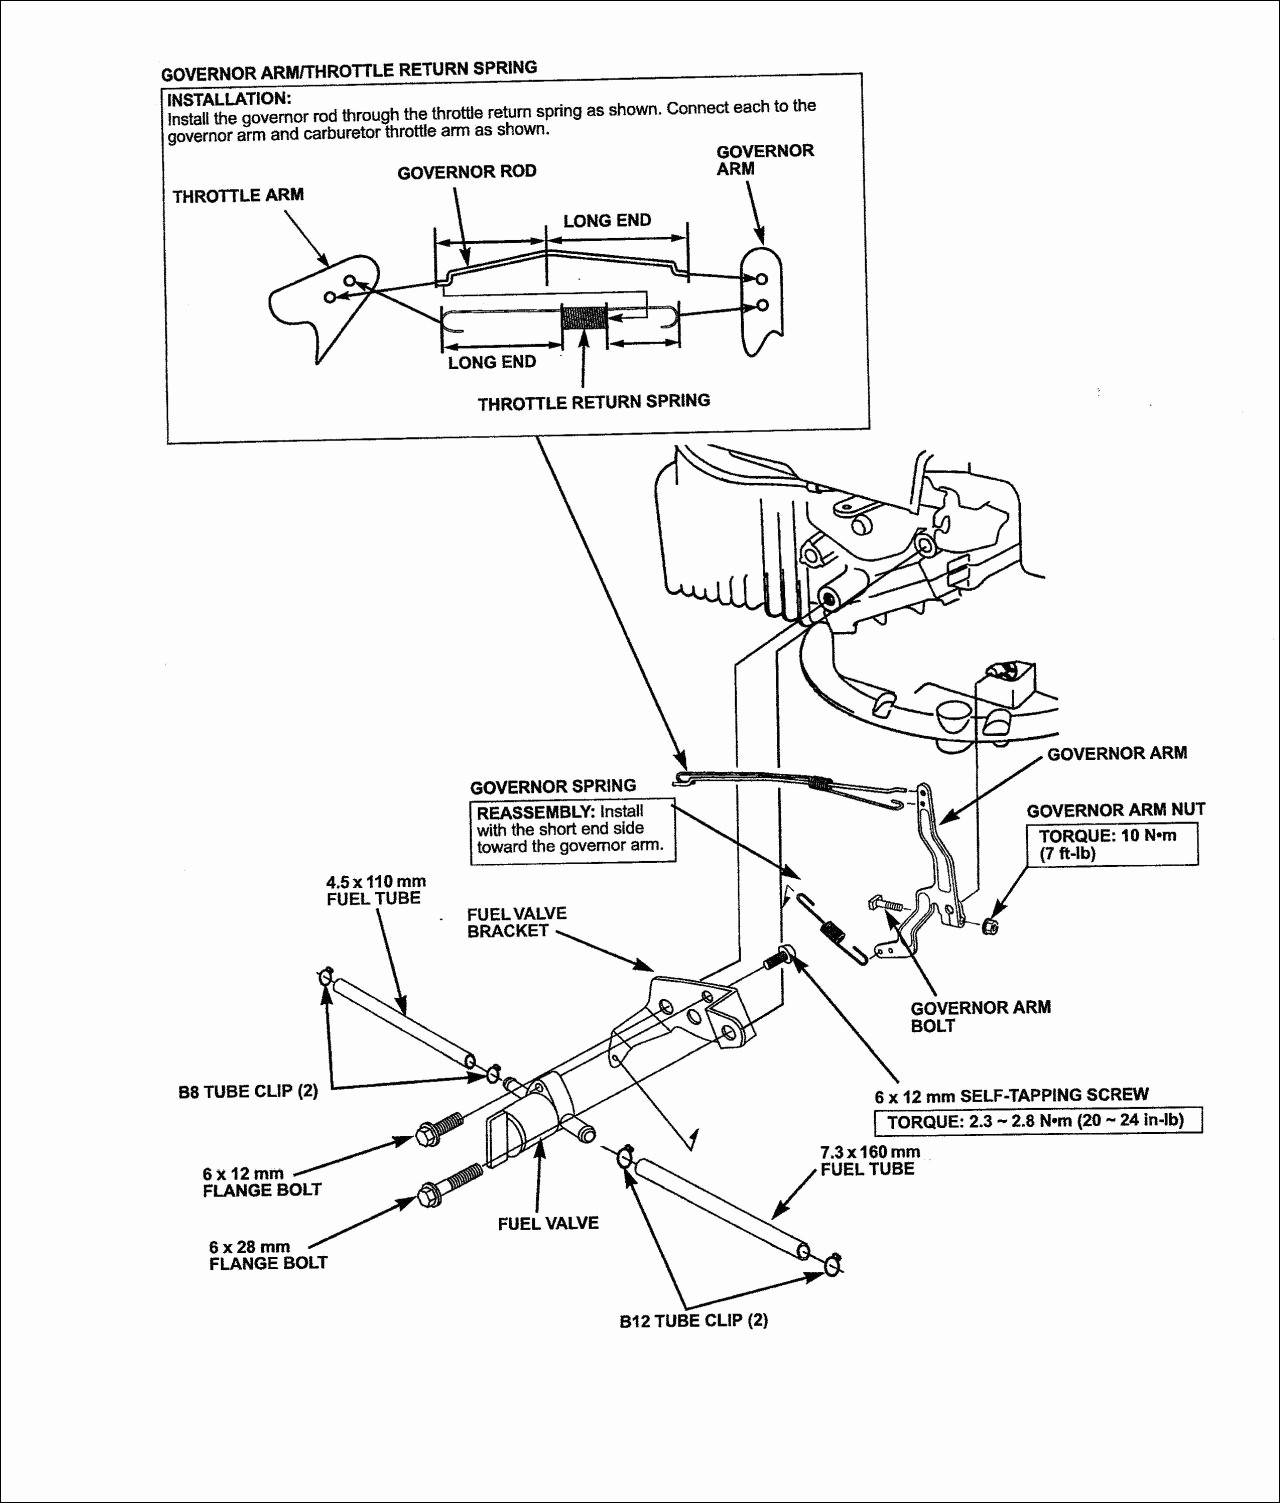 hight resolution of 150cc gy6 engine bench test wiring diagram wiring librarygy6 engine diagram improve wiring diagram